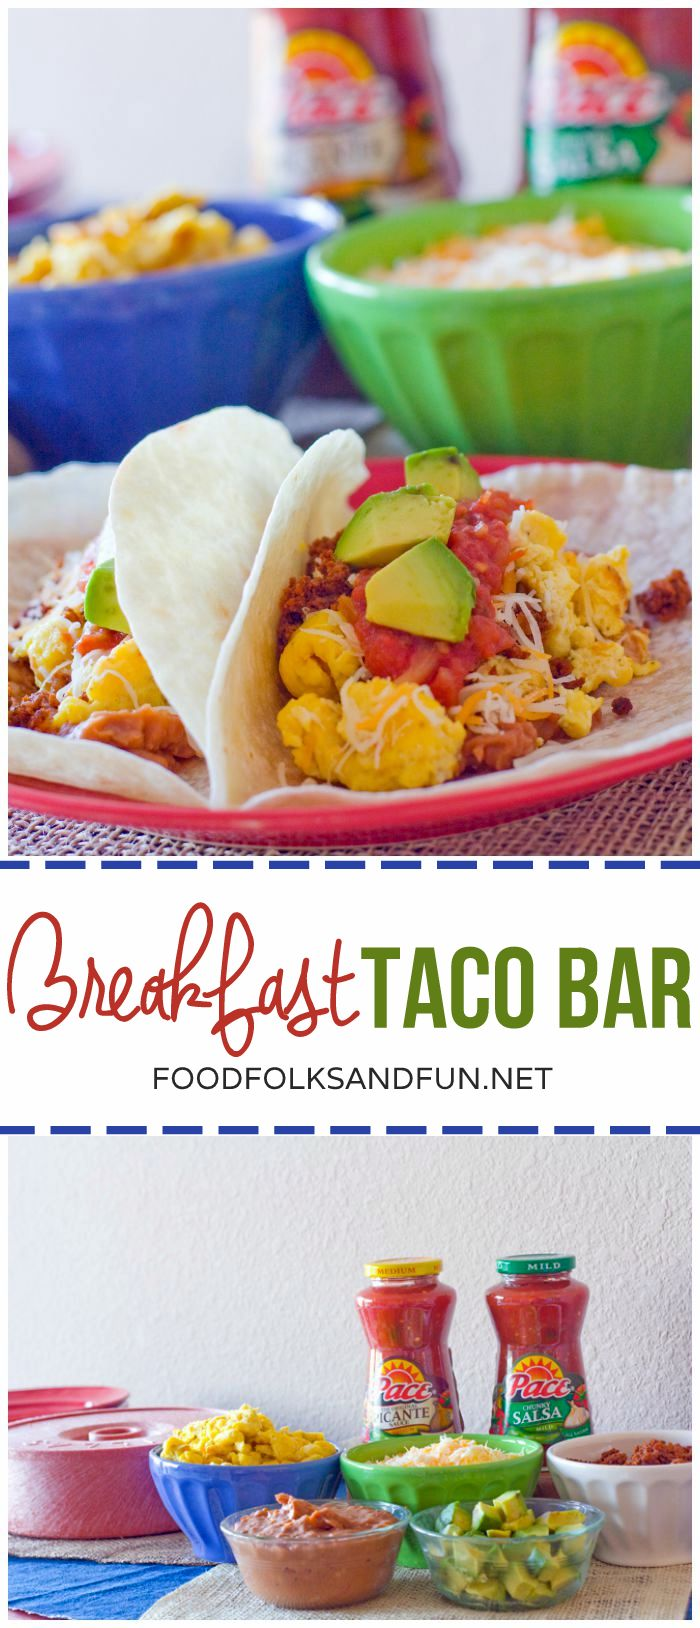 This Breakfast Taco Bar is my secret weapon for out of town guests or hosting early morning college football games! It's easy to throw together and everyone love it!